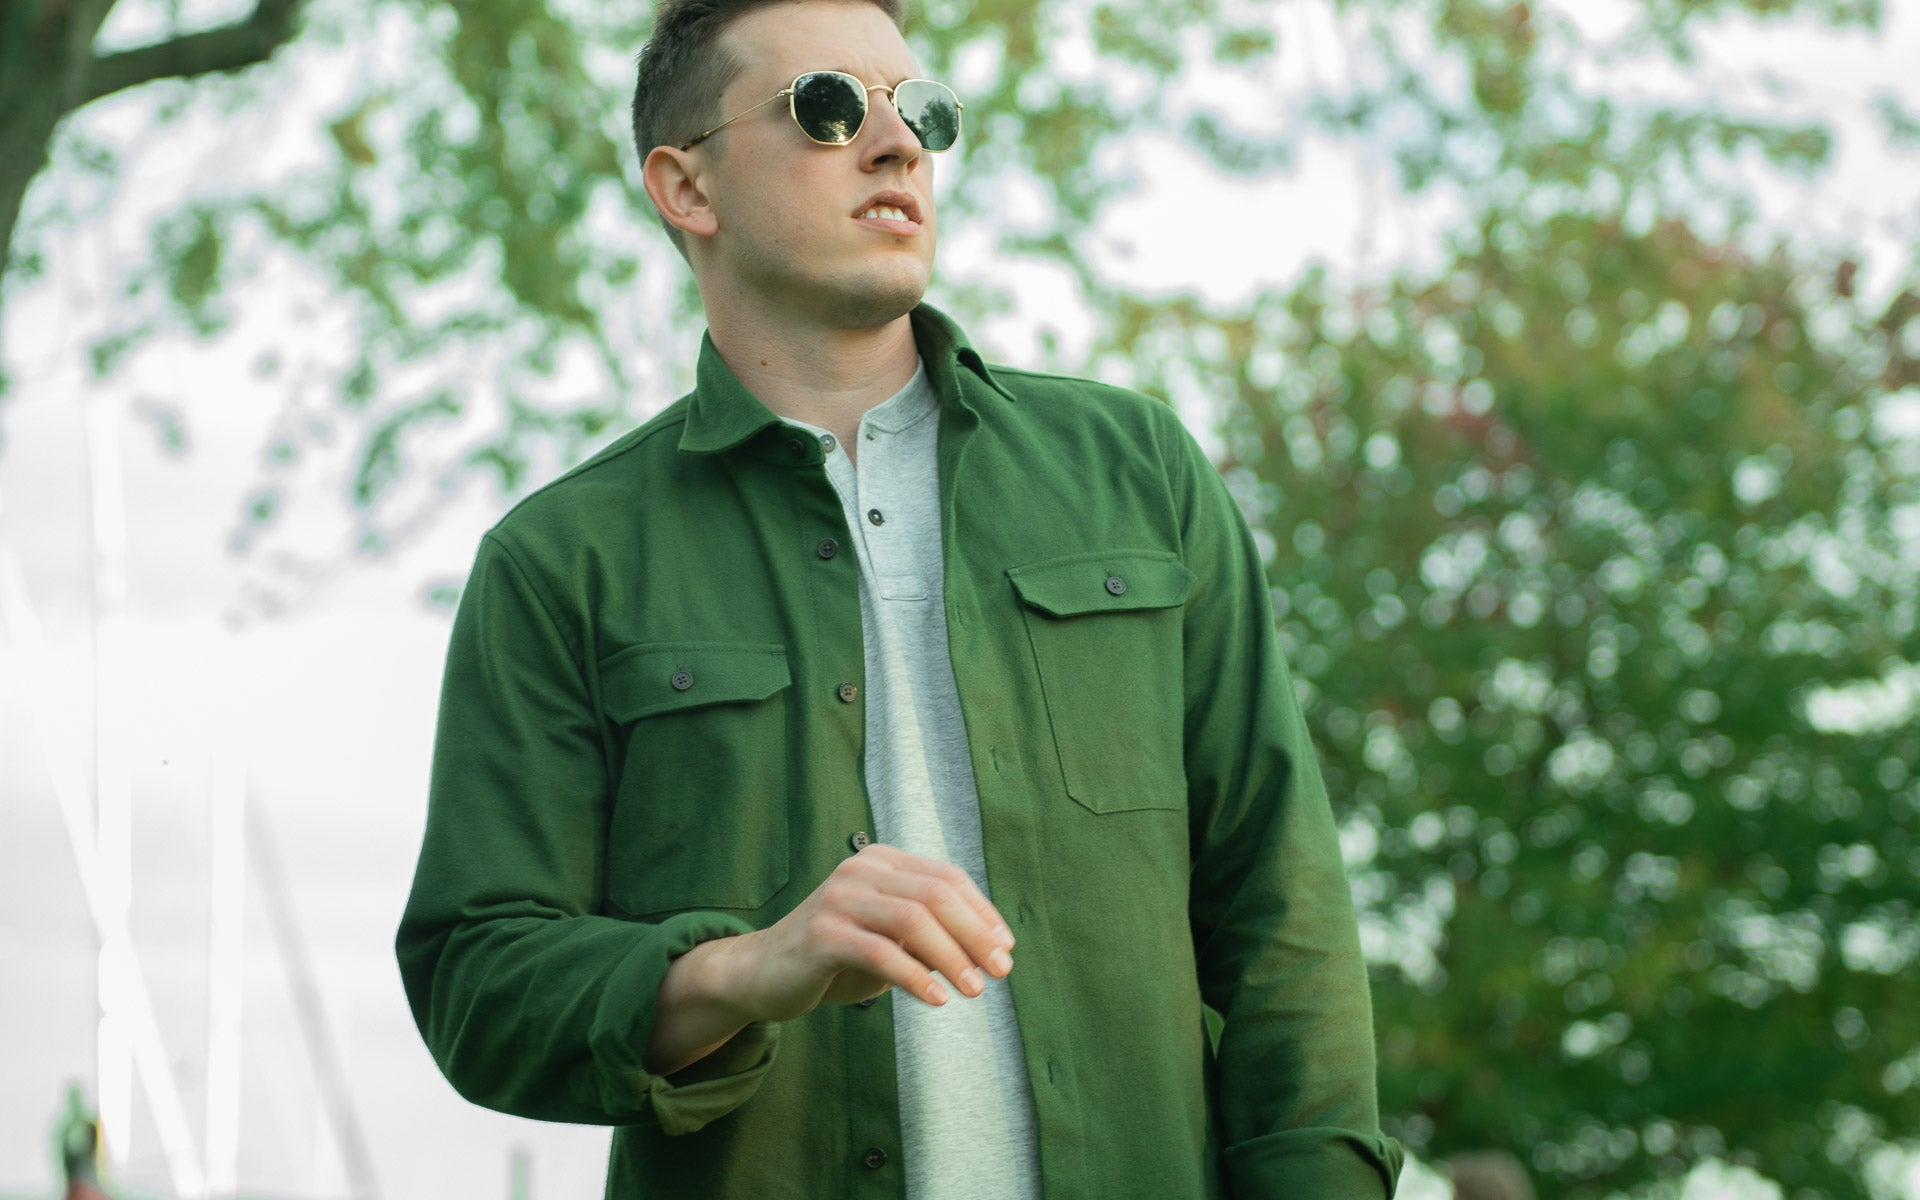 The Olive Flannel Shirt Jacket By MuskOx Apparel